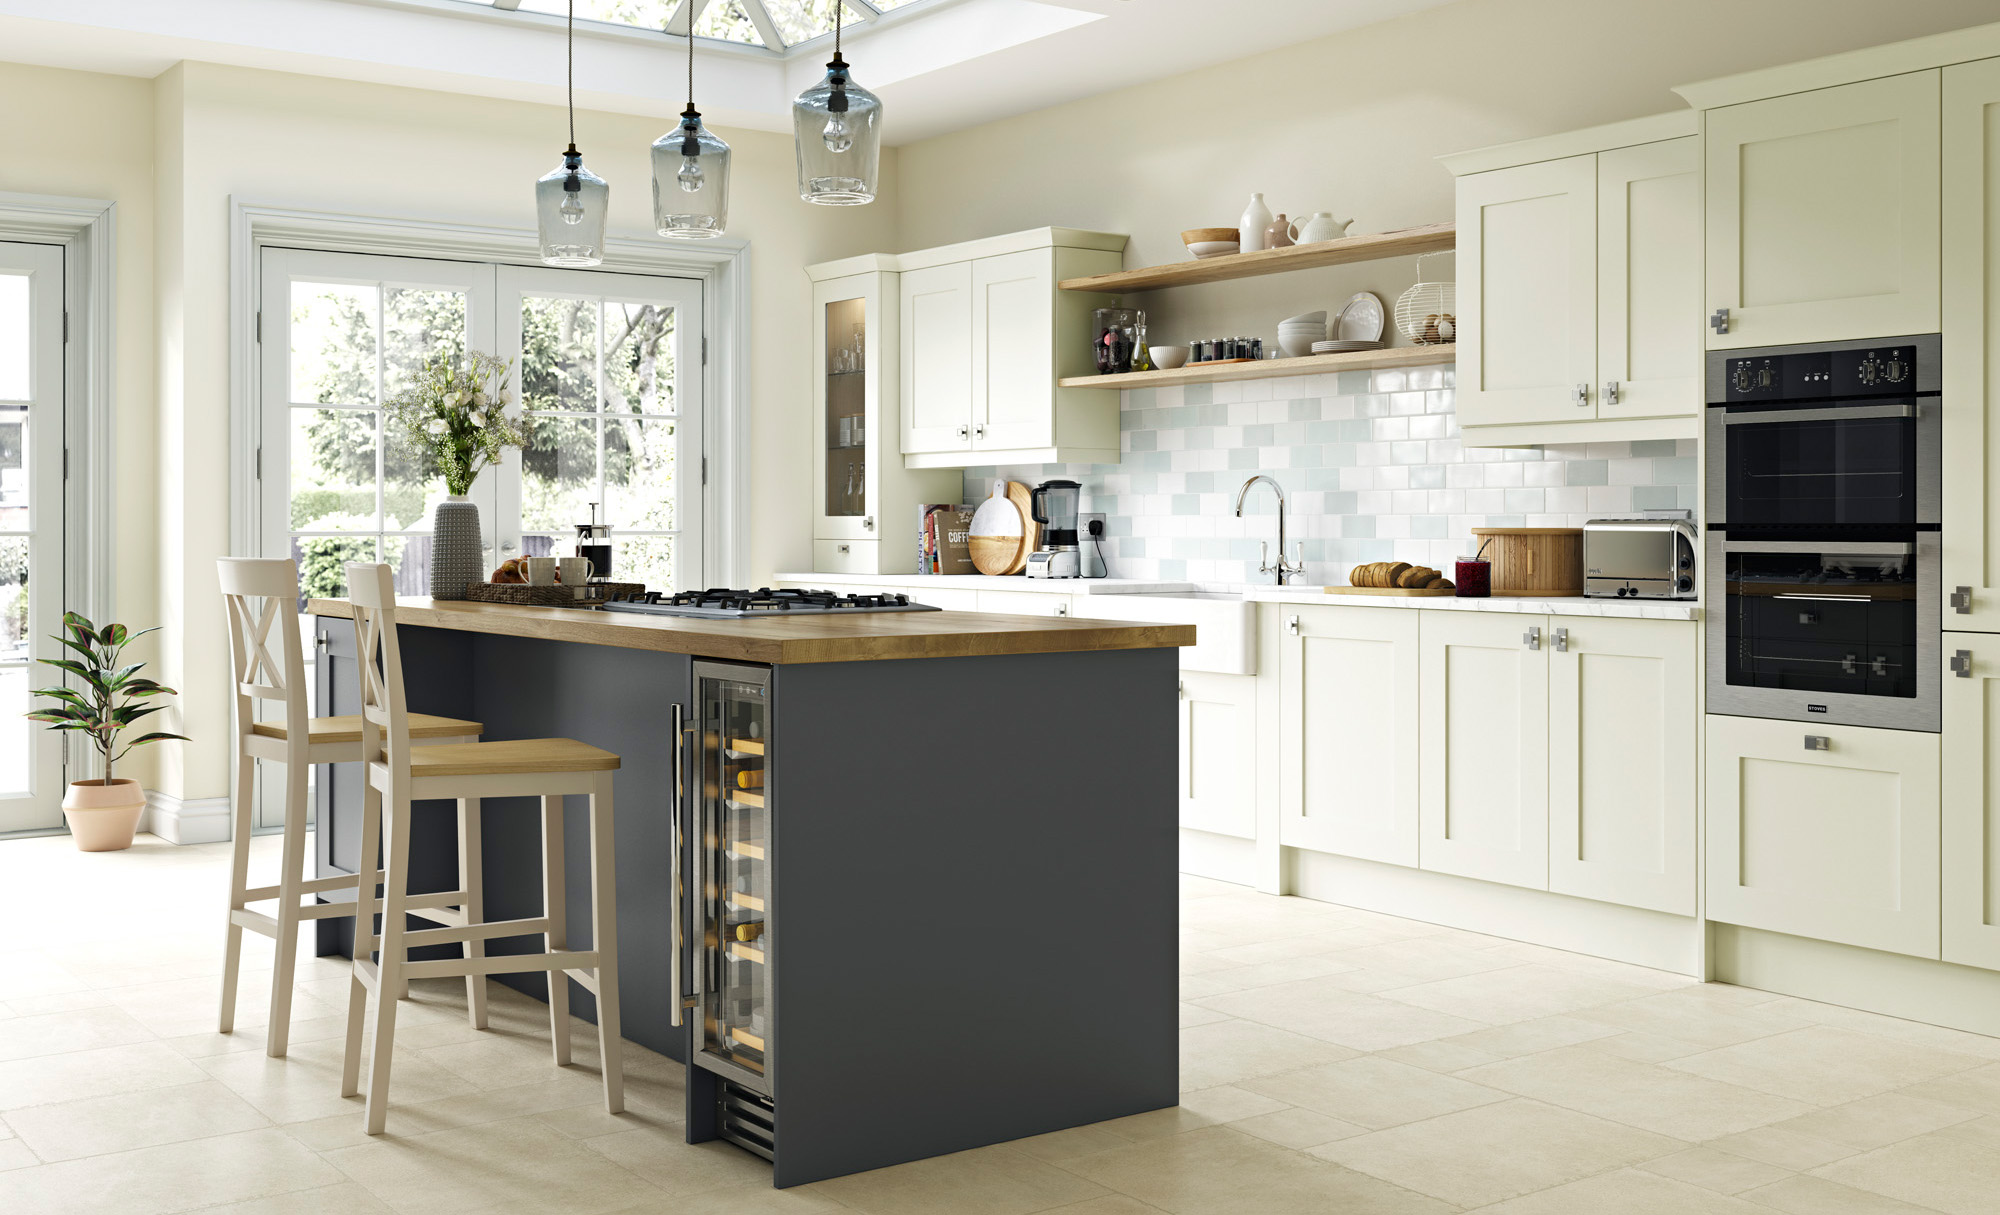 Georgia Smooth Painted Shaker Kitchen in Porcelain & Graphite